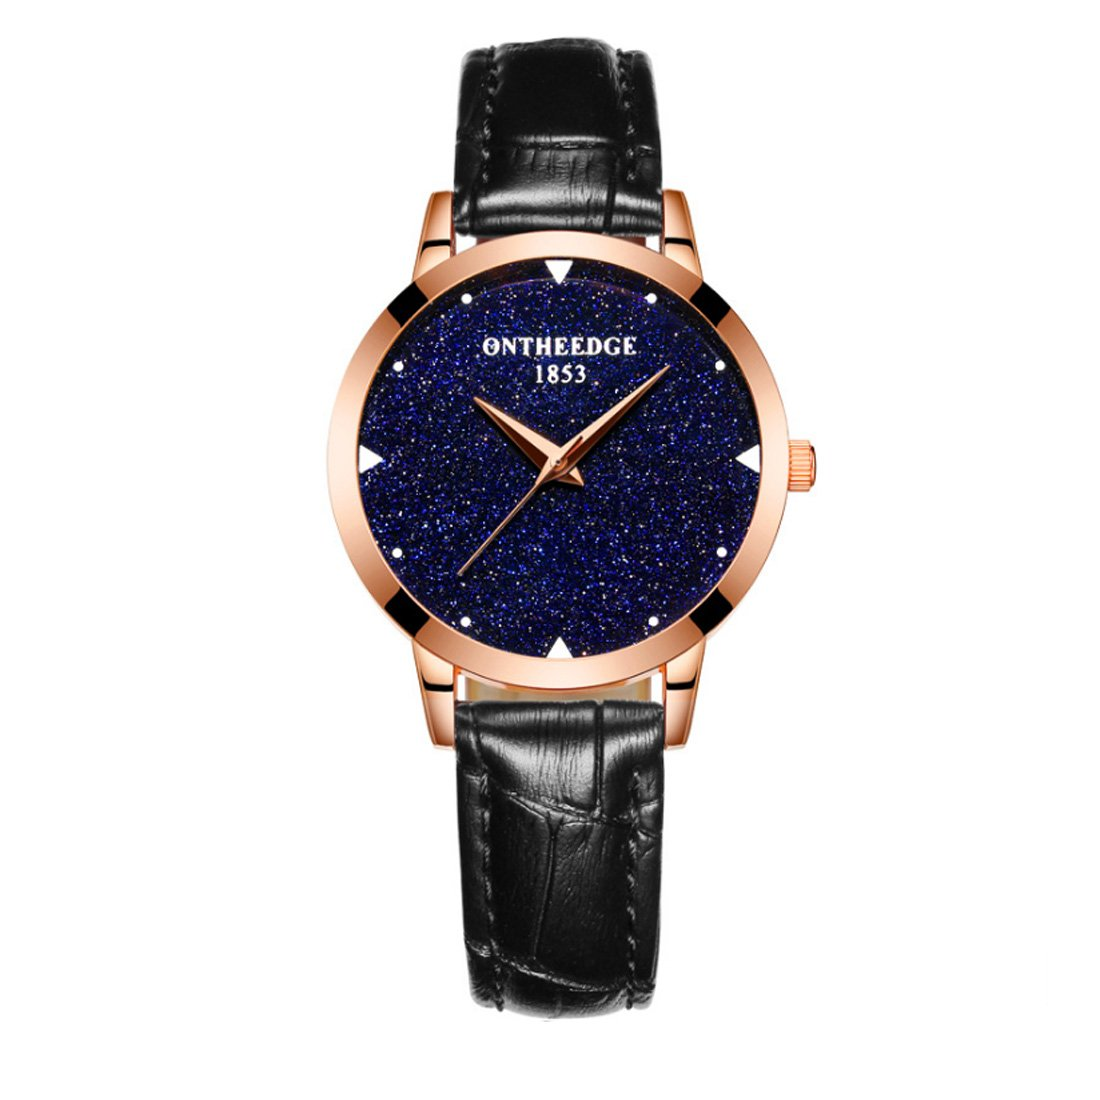 Watch,Women Ladies Girl Watches Luxury Fashion Starry Sky Series Minimalist Leather Strap Dress Waterproof Analogue Quartz Watch,Breathable Band,Mineral Reinforced Glass Mirror (Black)